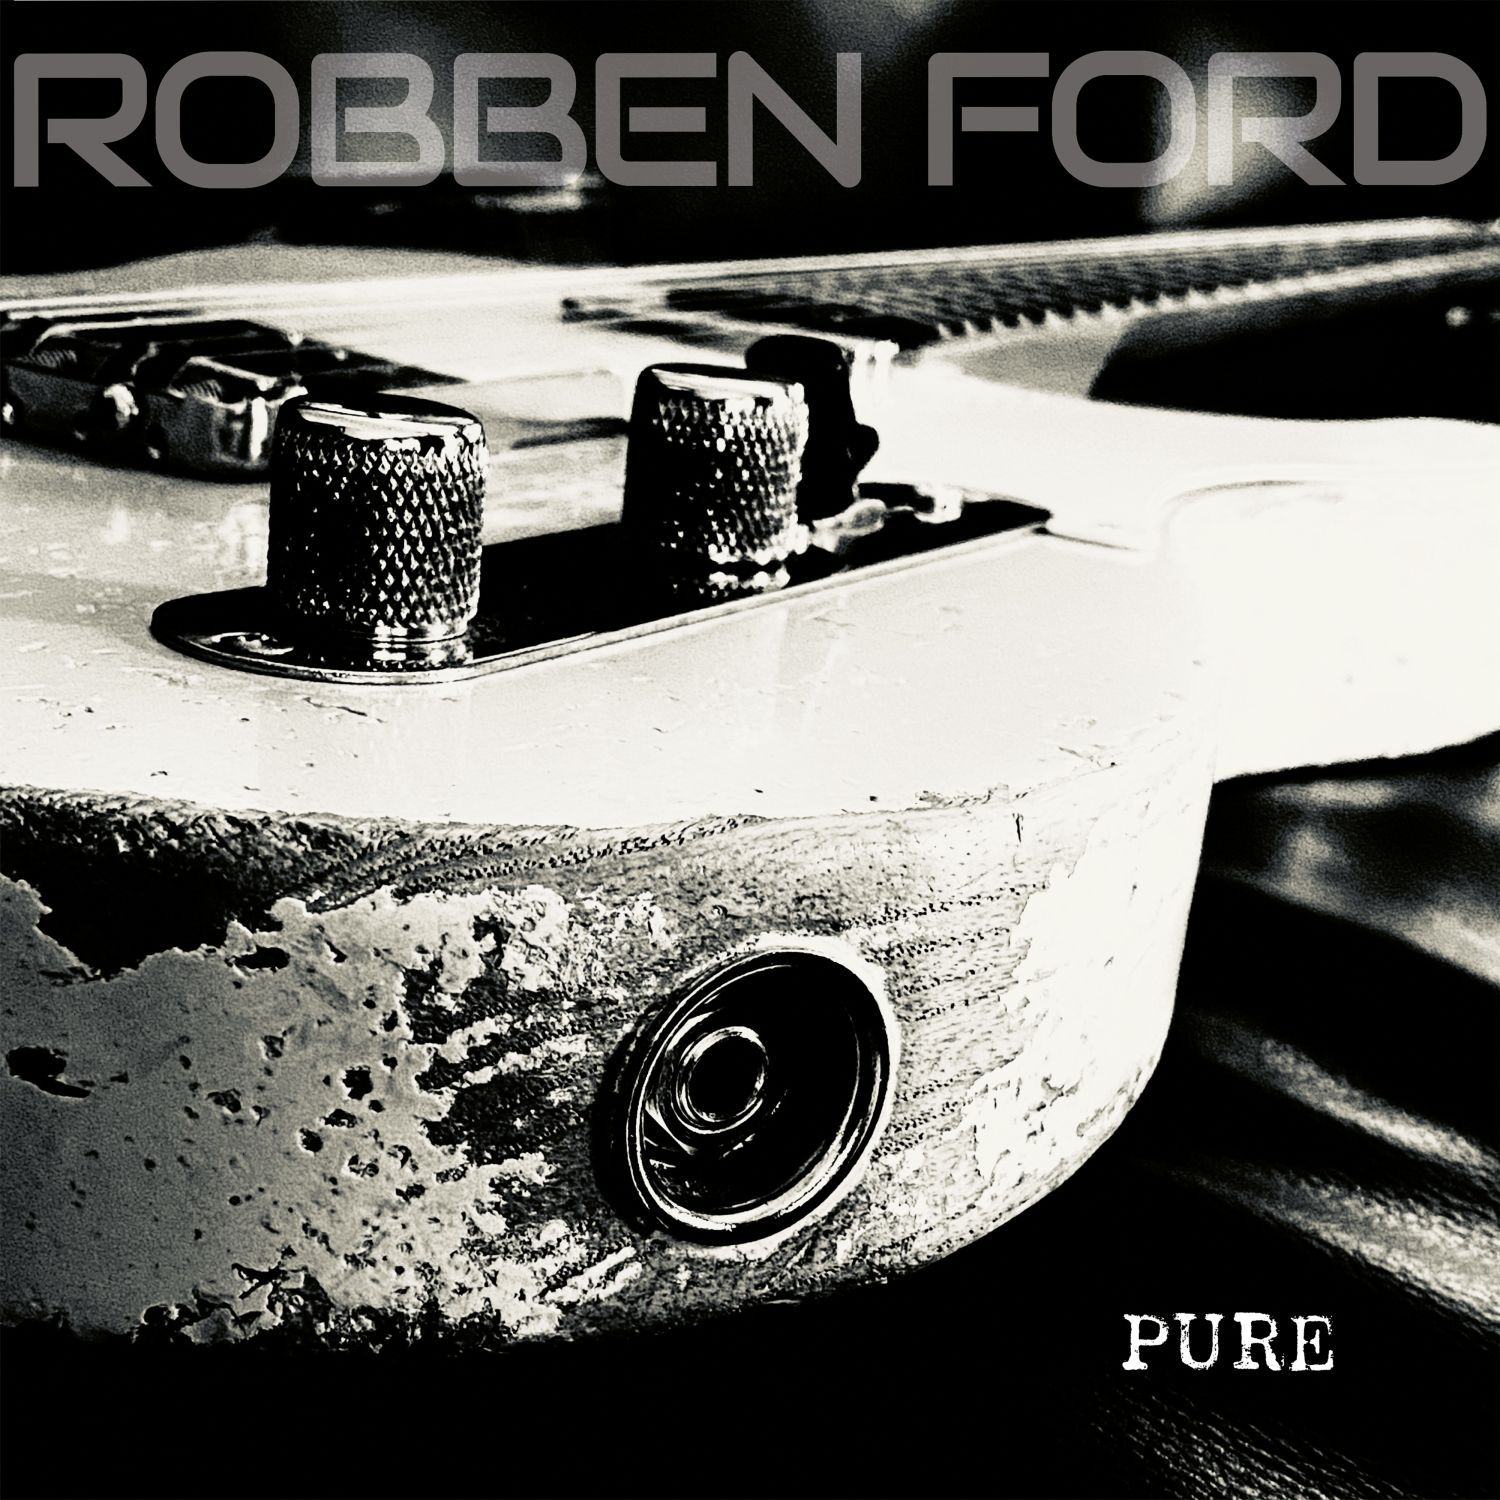 """Robben Ford: nowy solowy album """"PURE"""""""